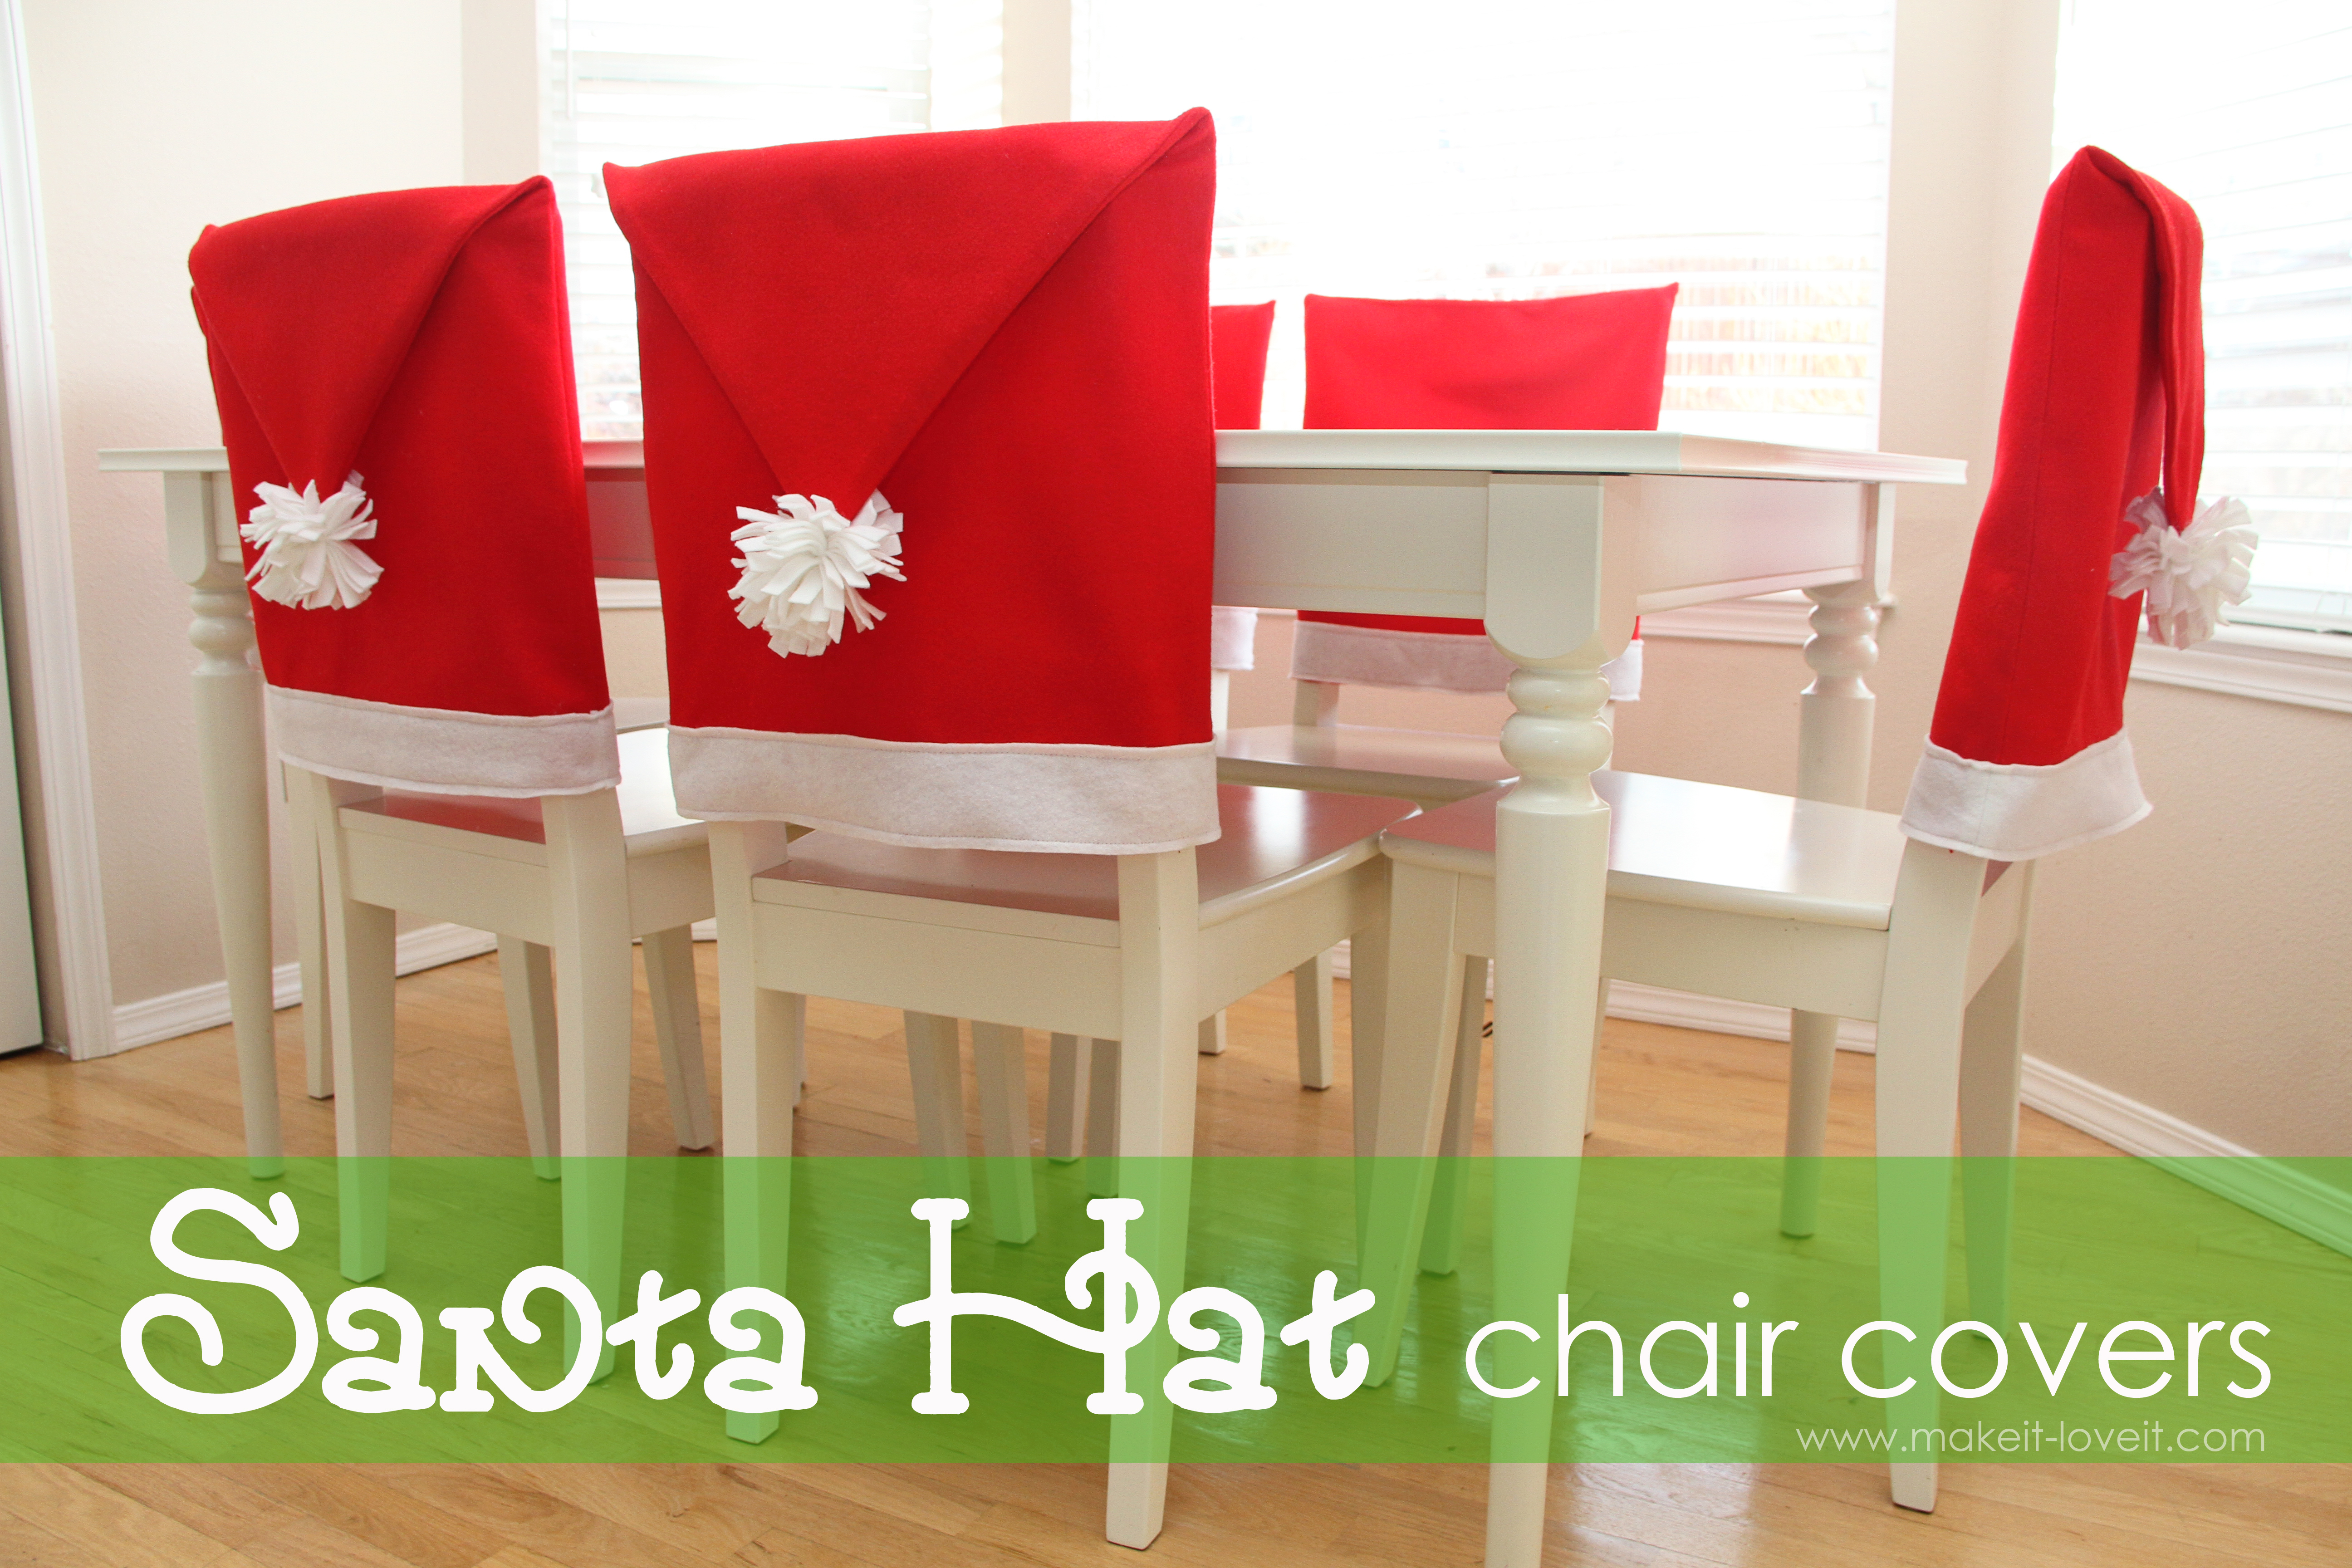 Sew Dining Room Chair Covers santa hat chair covers (a serious bah-humbug repellent!!) – make it